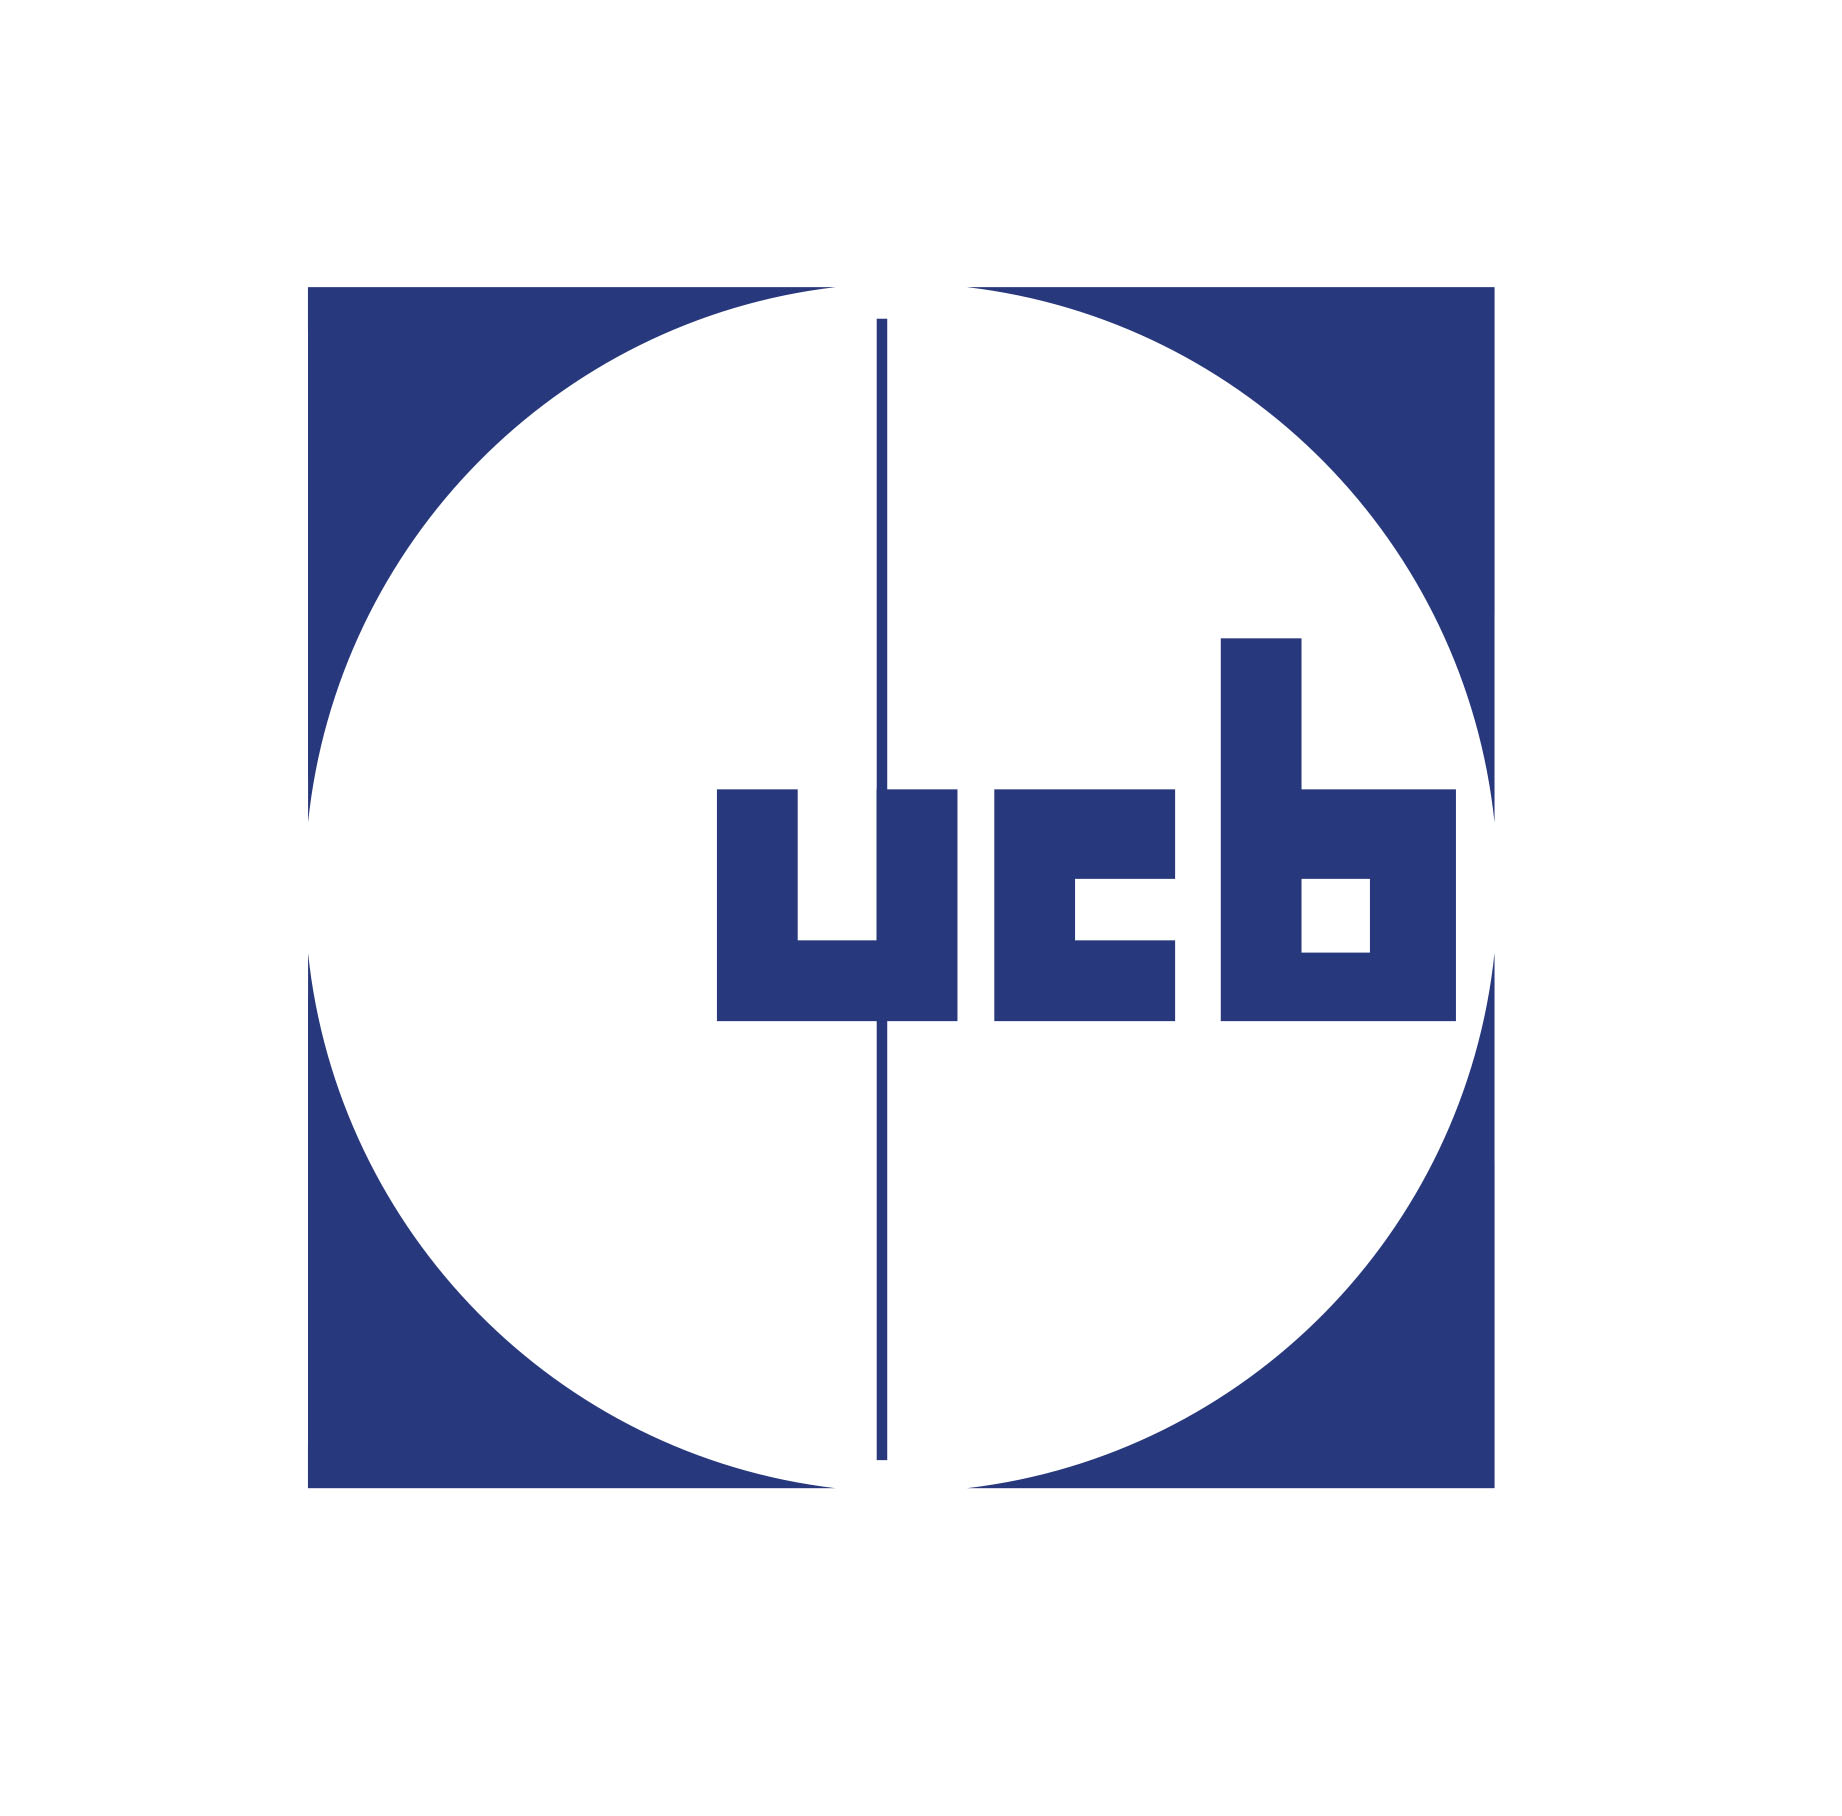 FutureNeuro partners with UCB to give clinicians meaningful insights into epilepsy treatments